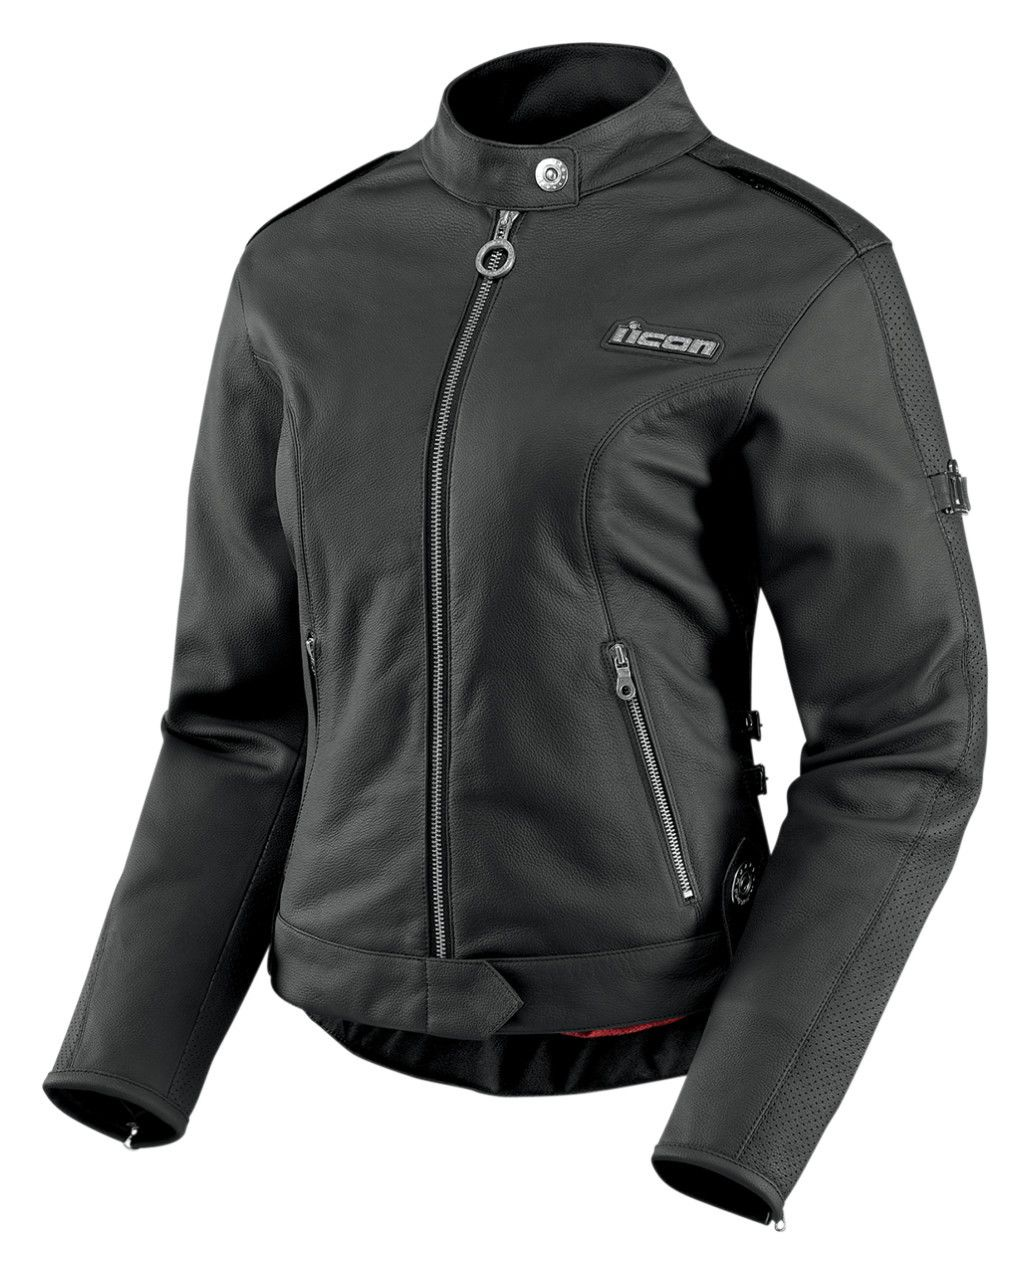 Icon Hella Women's Leather Jacket | 20% ($80.00) Off! - Cycle Gear